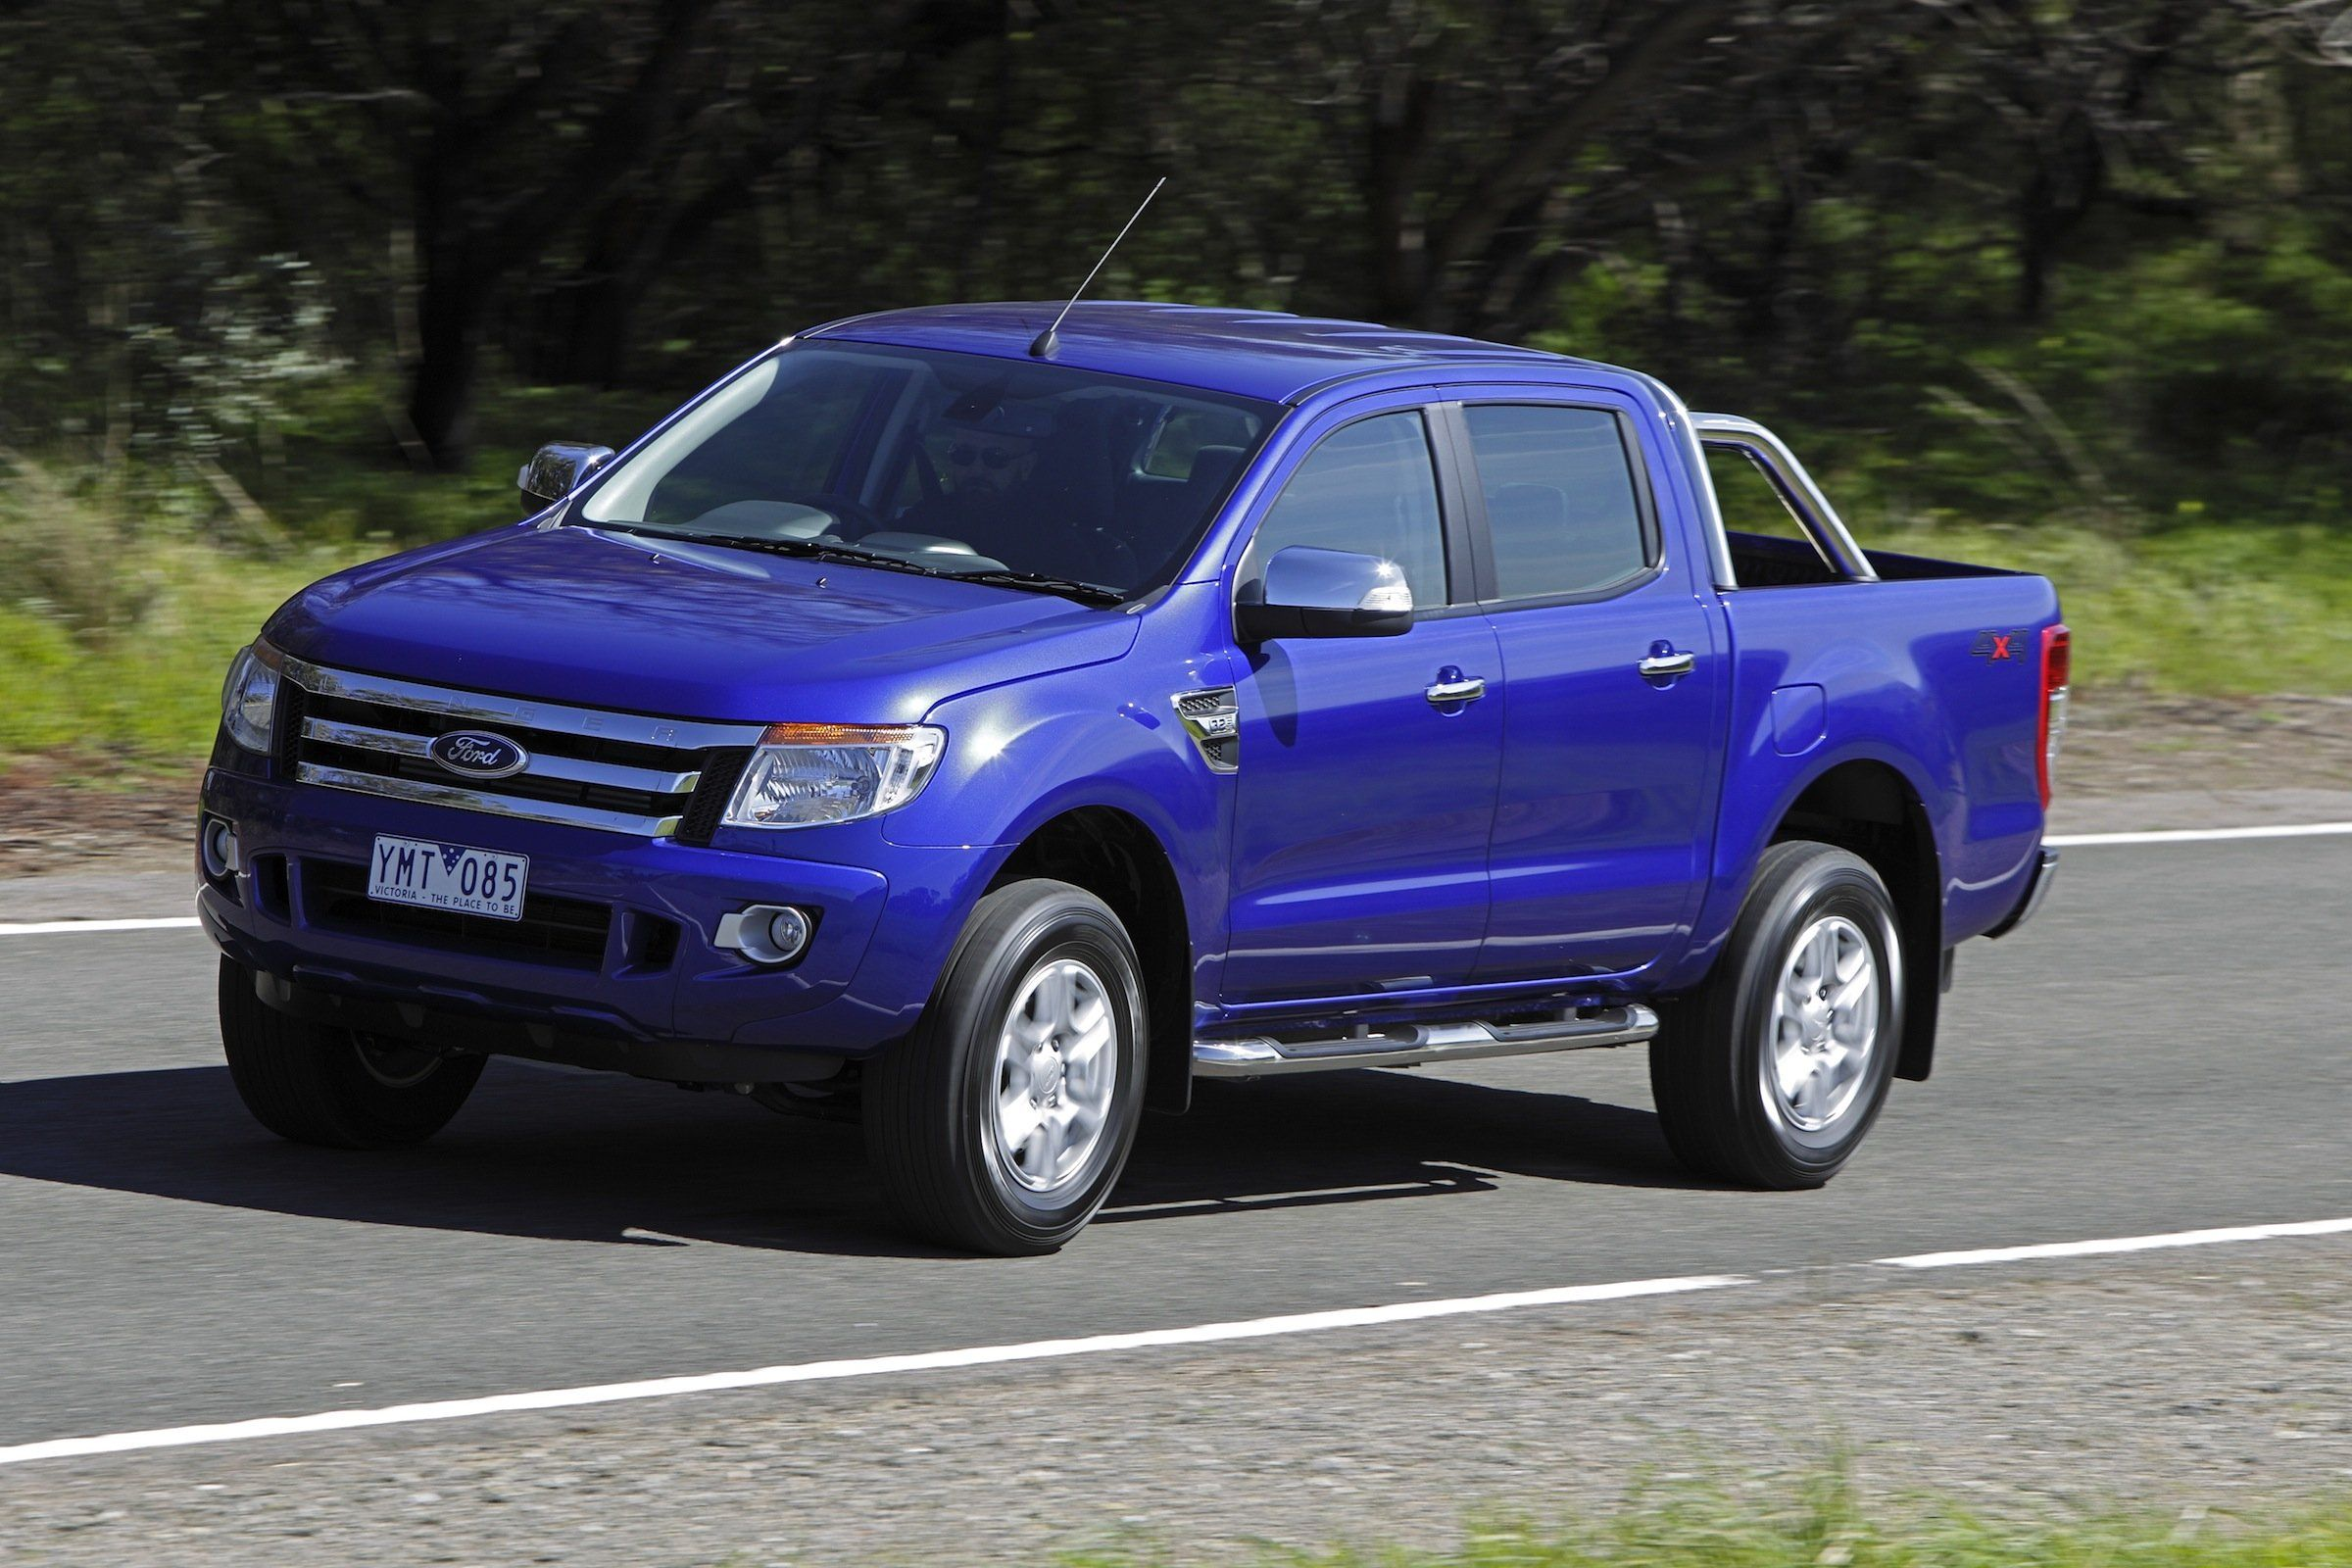 Ford Ranger Cruising